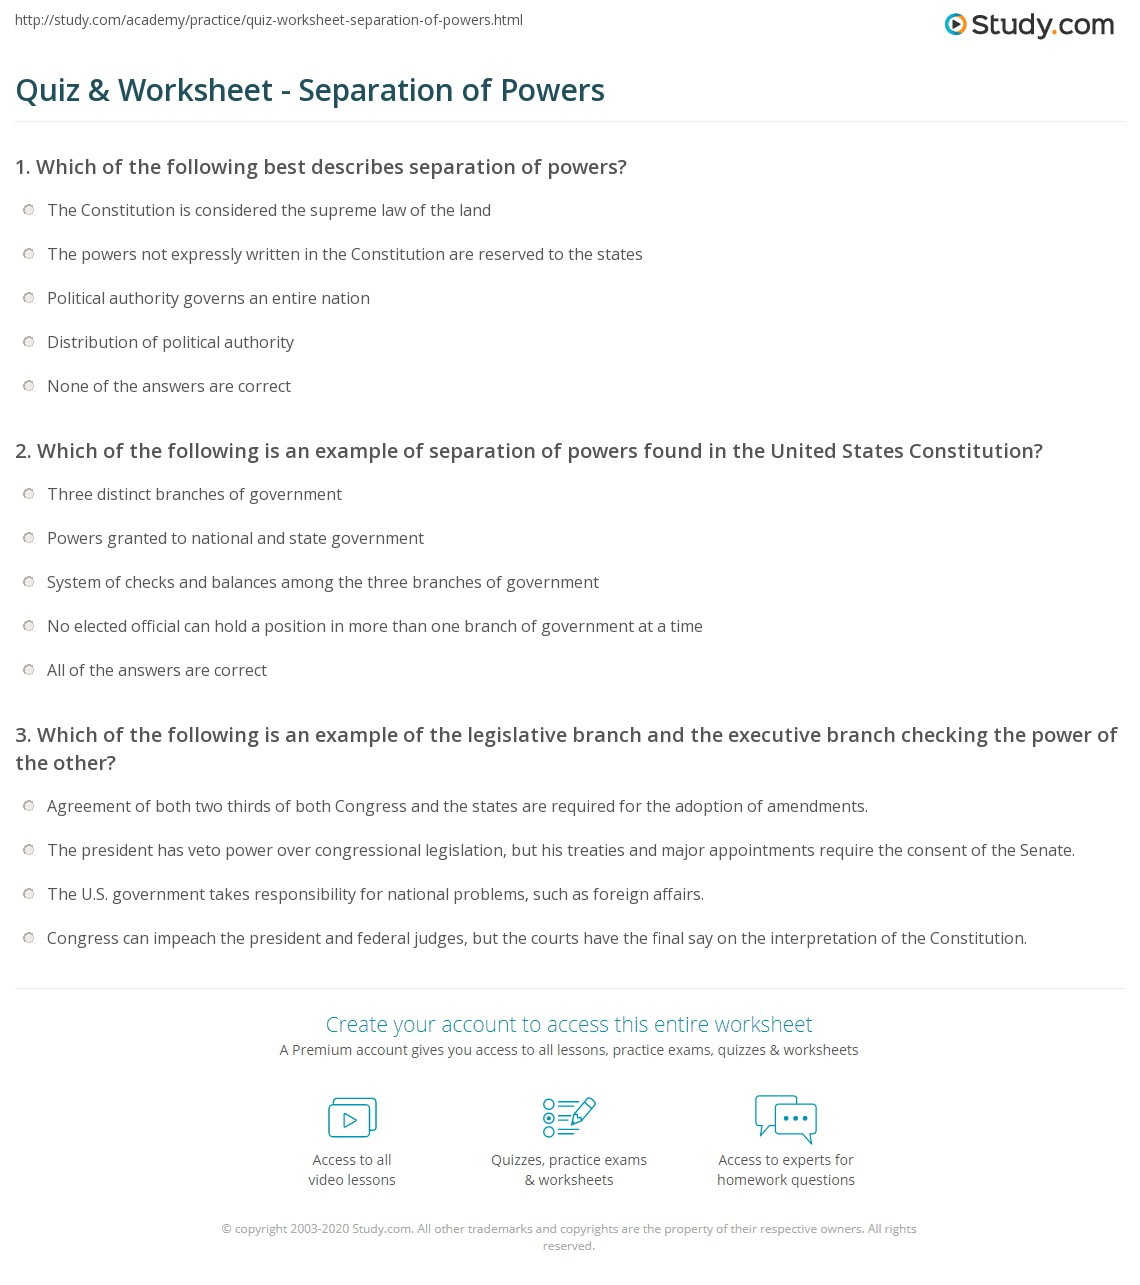 Print Separation of Powers: Definition & Examples Worksheet